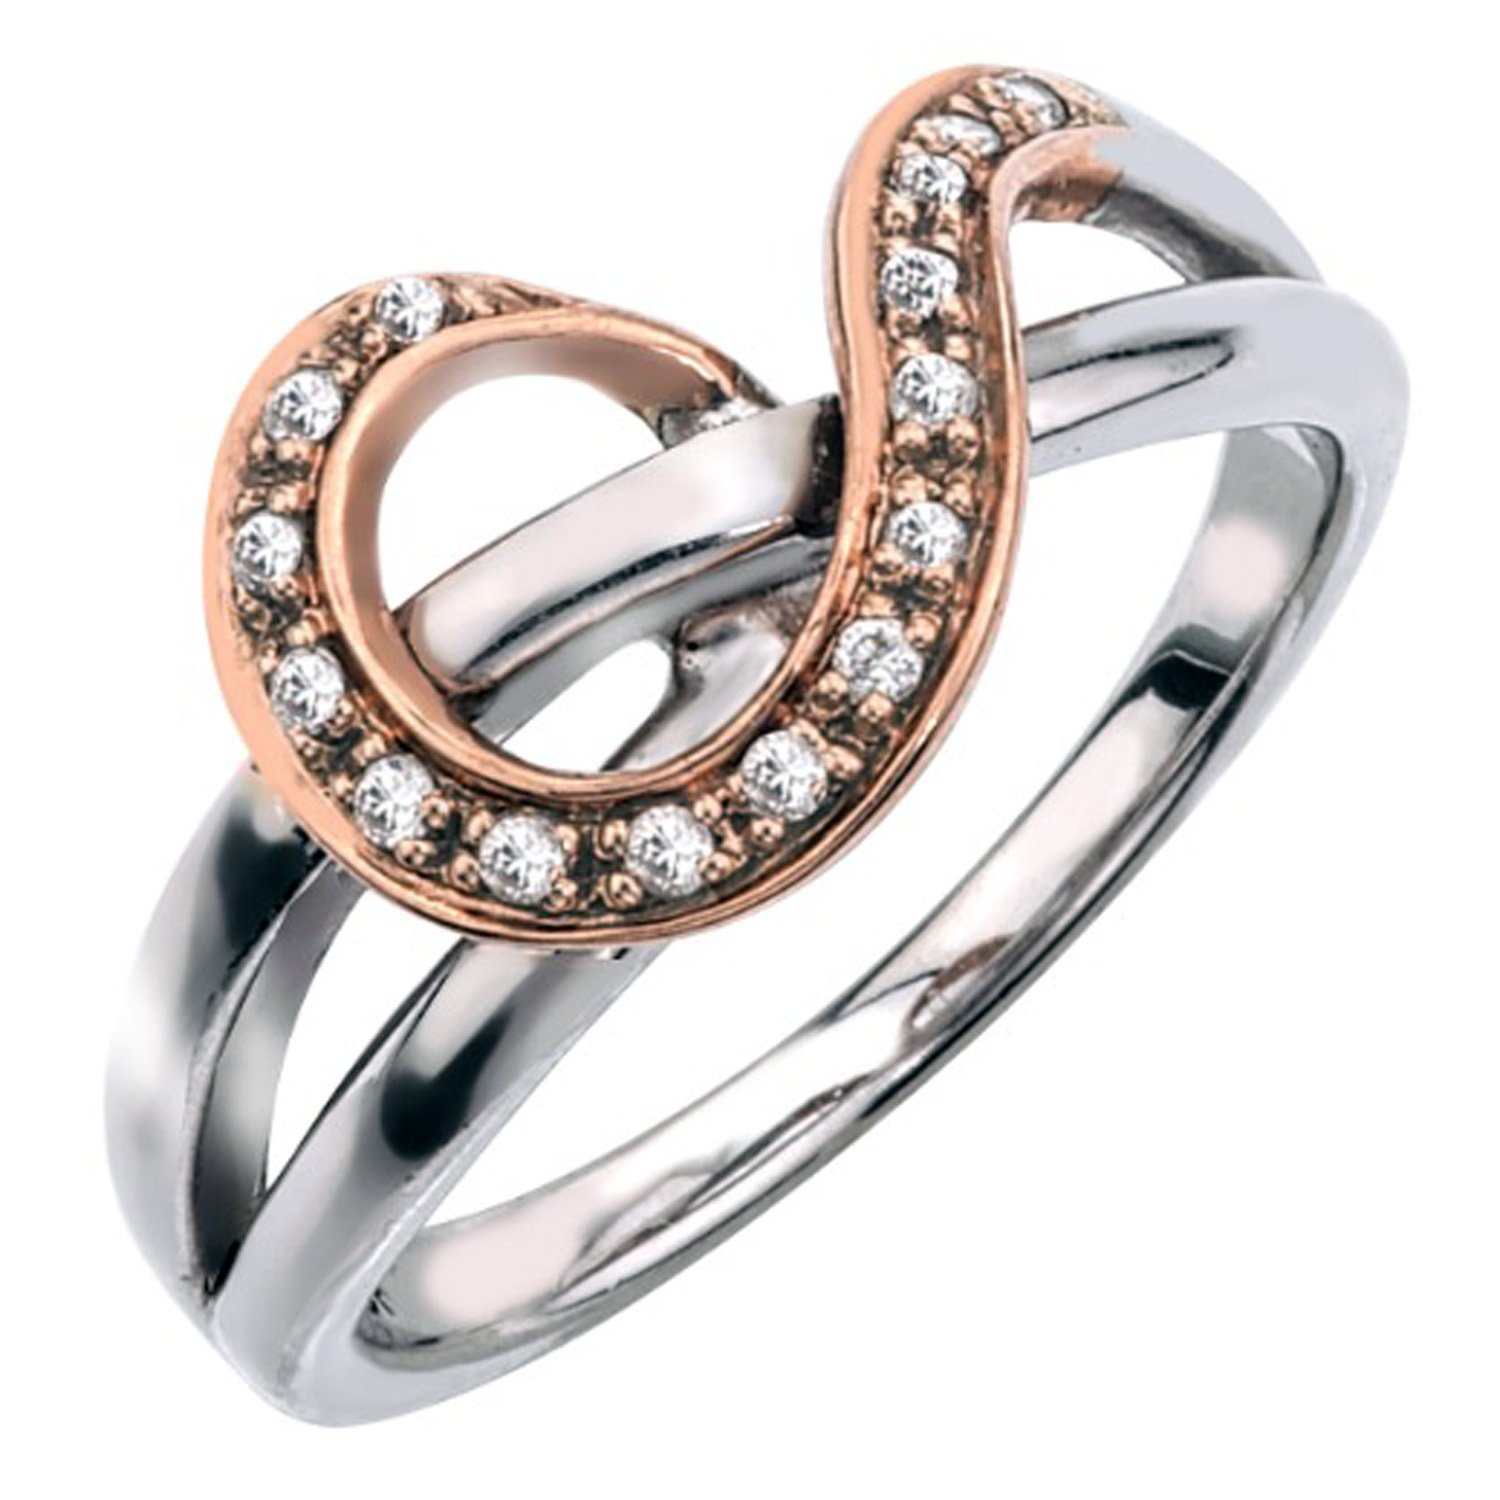 Diamond Ring in 10K Rose Gold Plated Sterling Silver (0.10 carats, H-I I2)